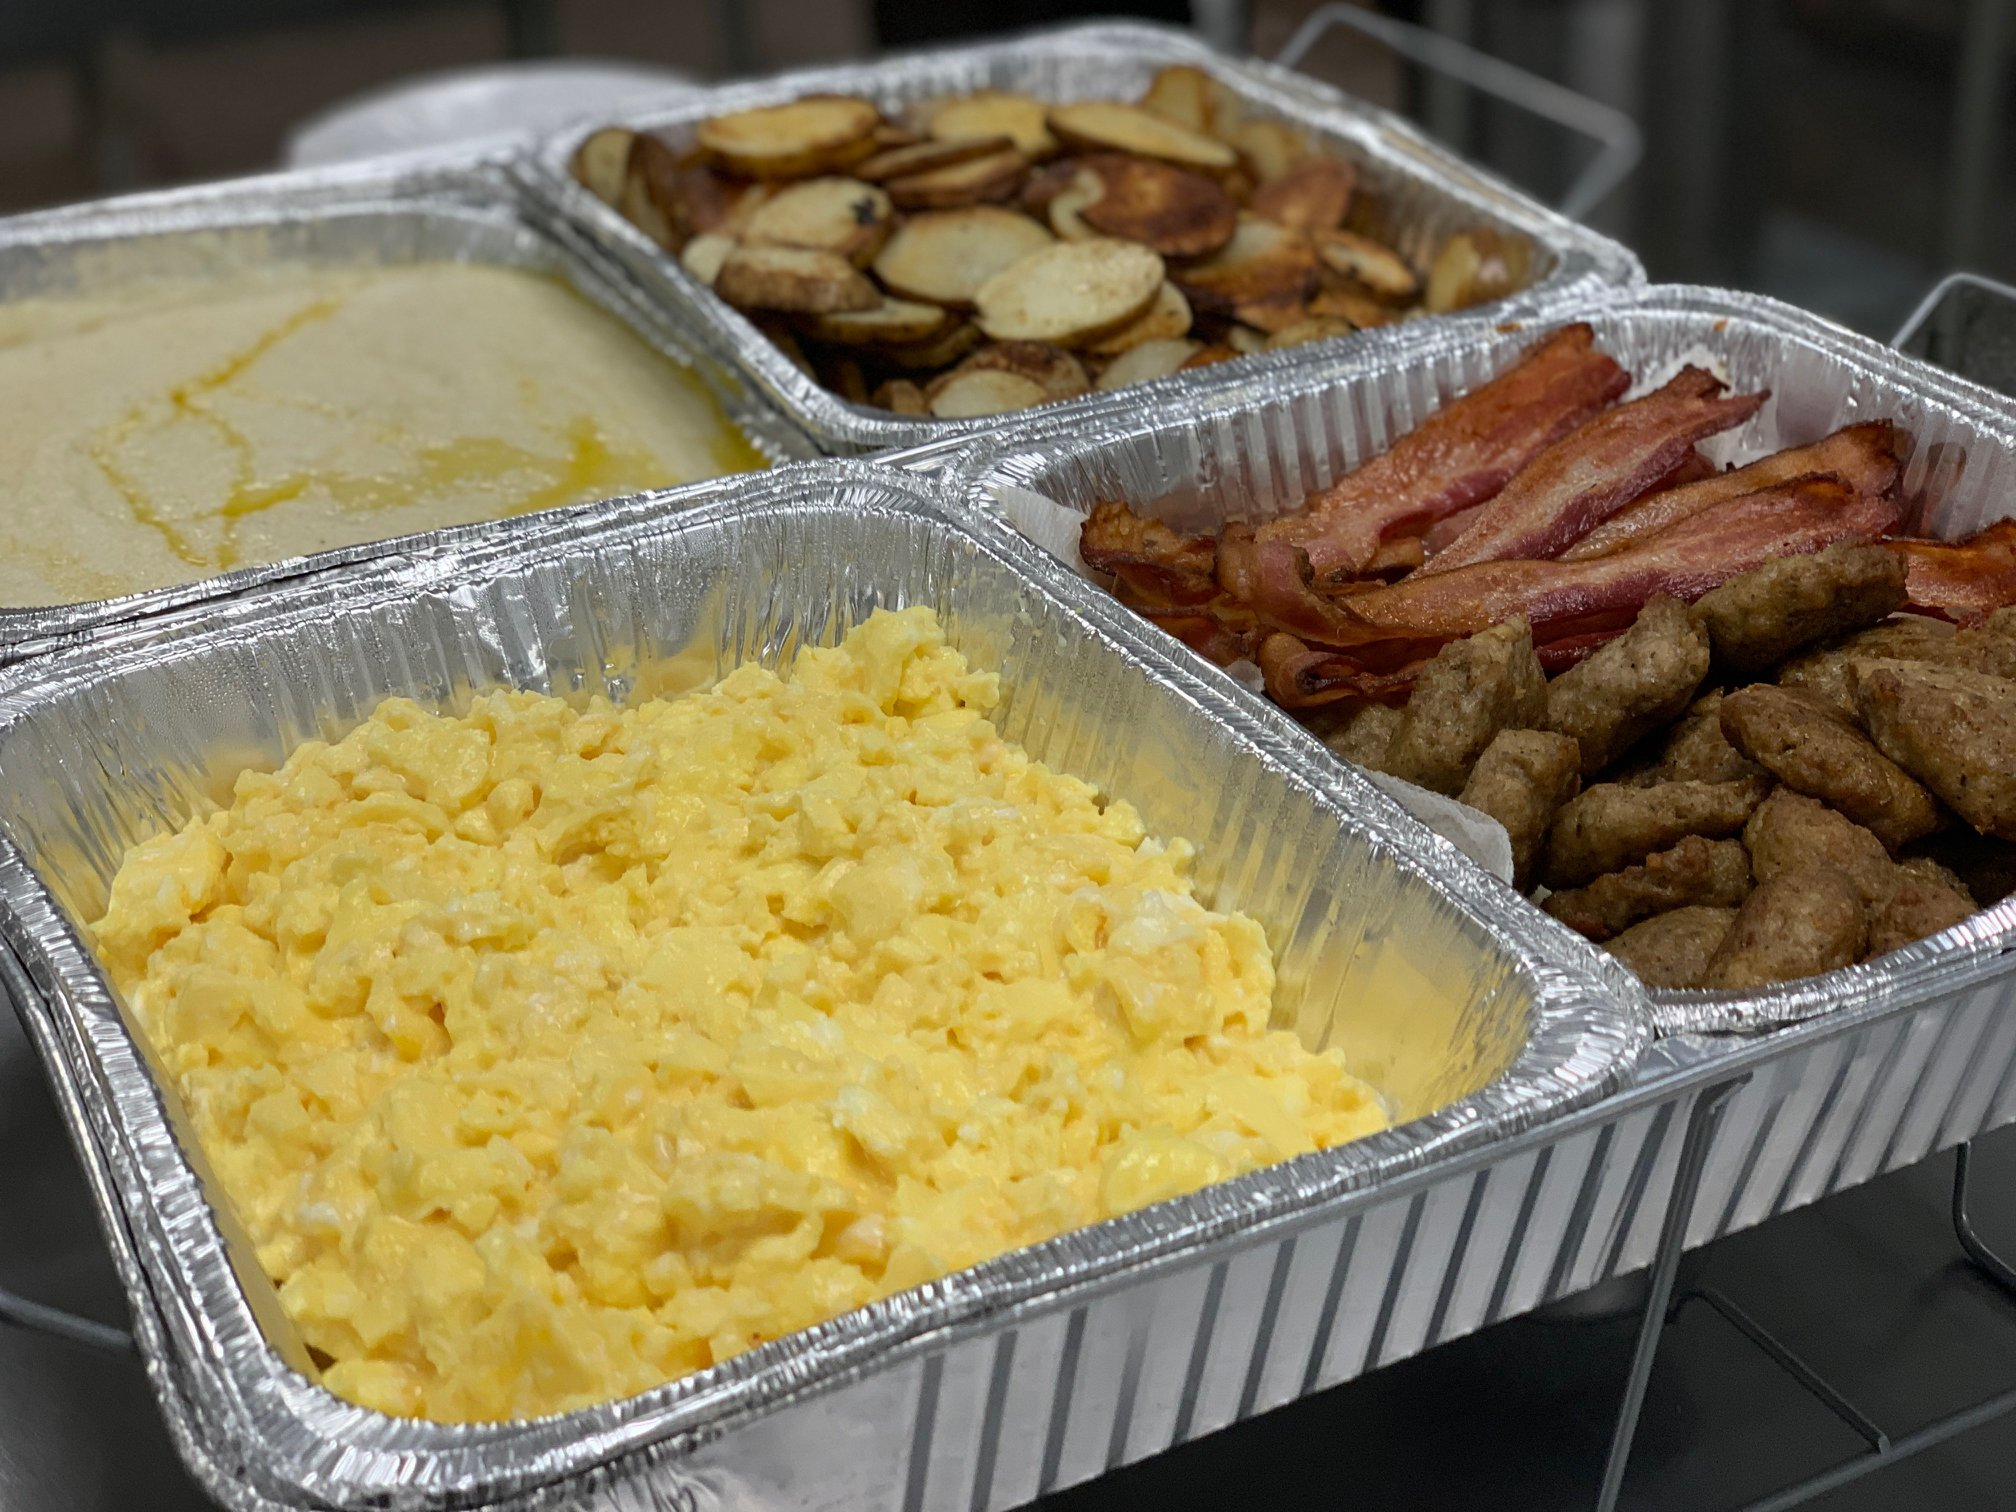 The Breakfast Catering Company Charlotte catering